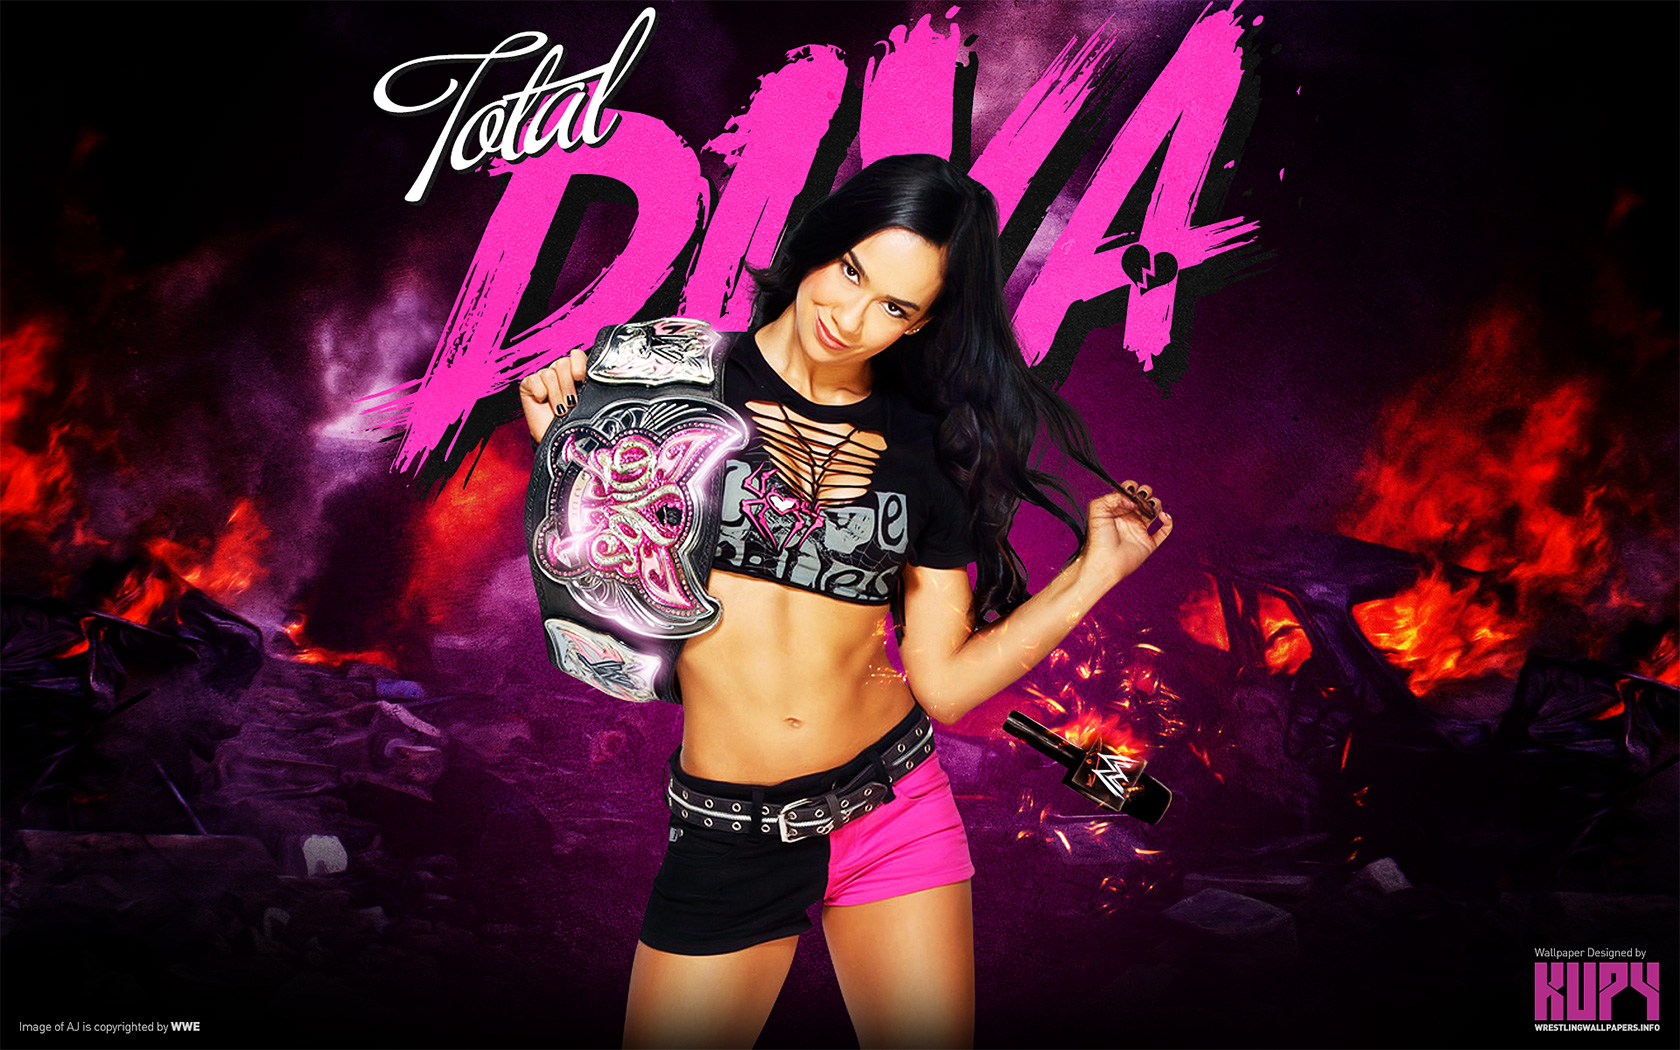 WWE Total Divas Wallpaper   HD Wallpapers Backgrounds of Your Choice 1680x1050